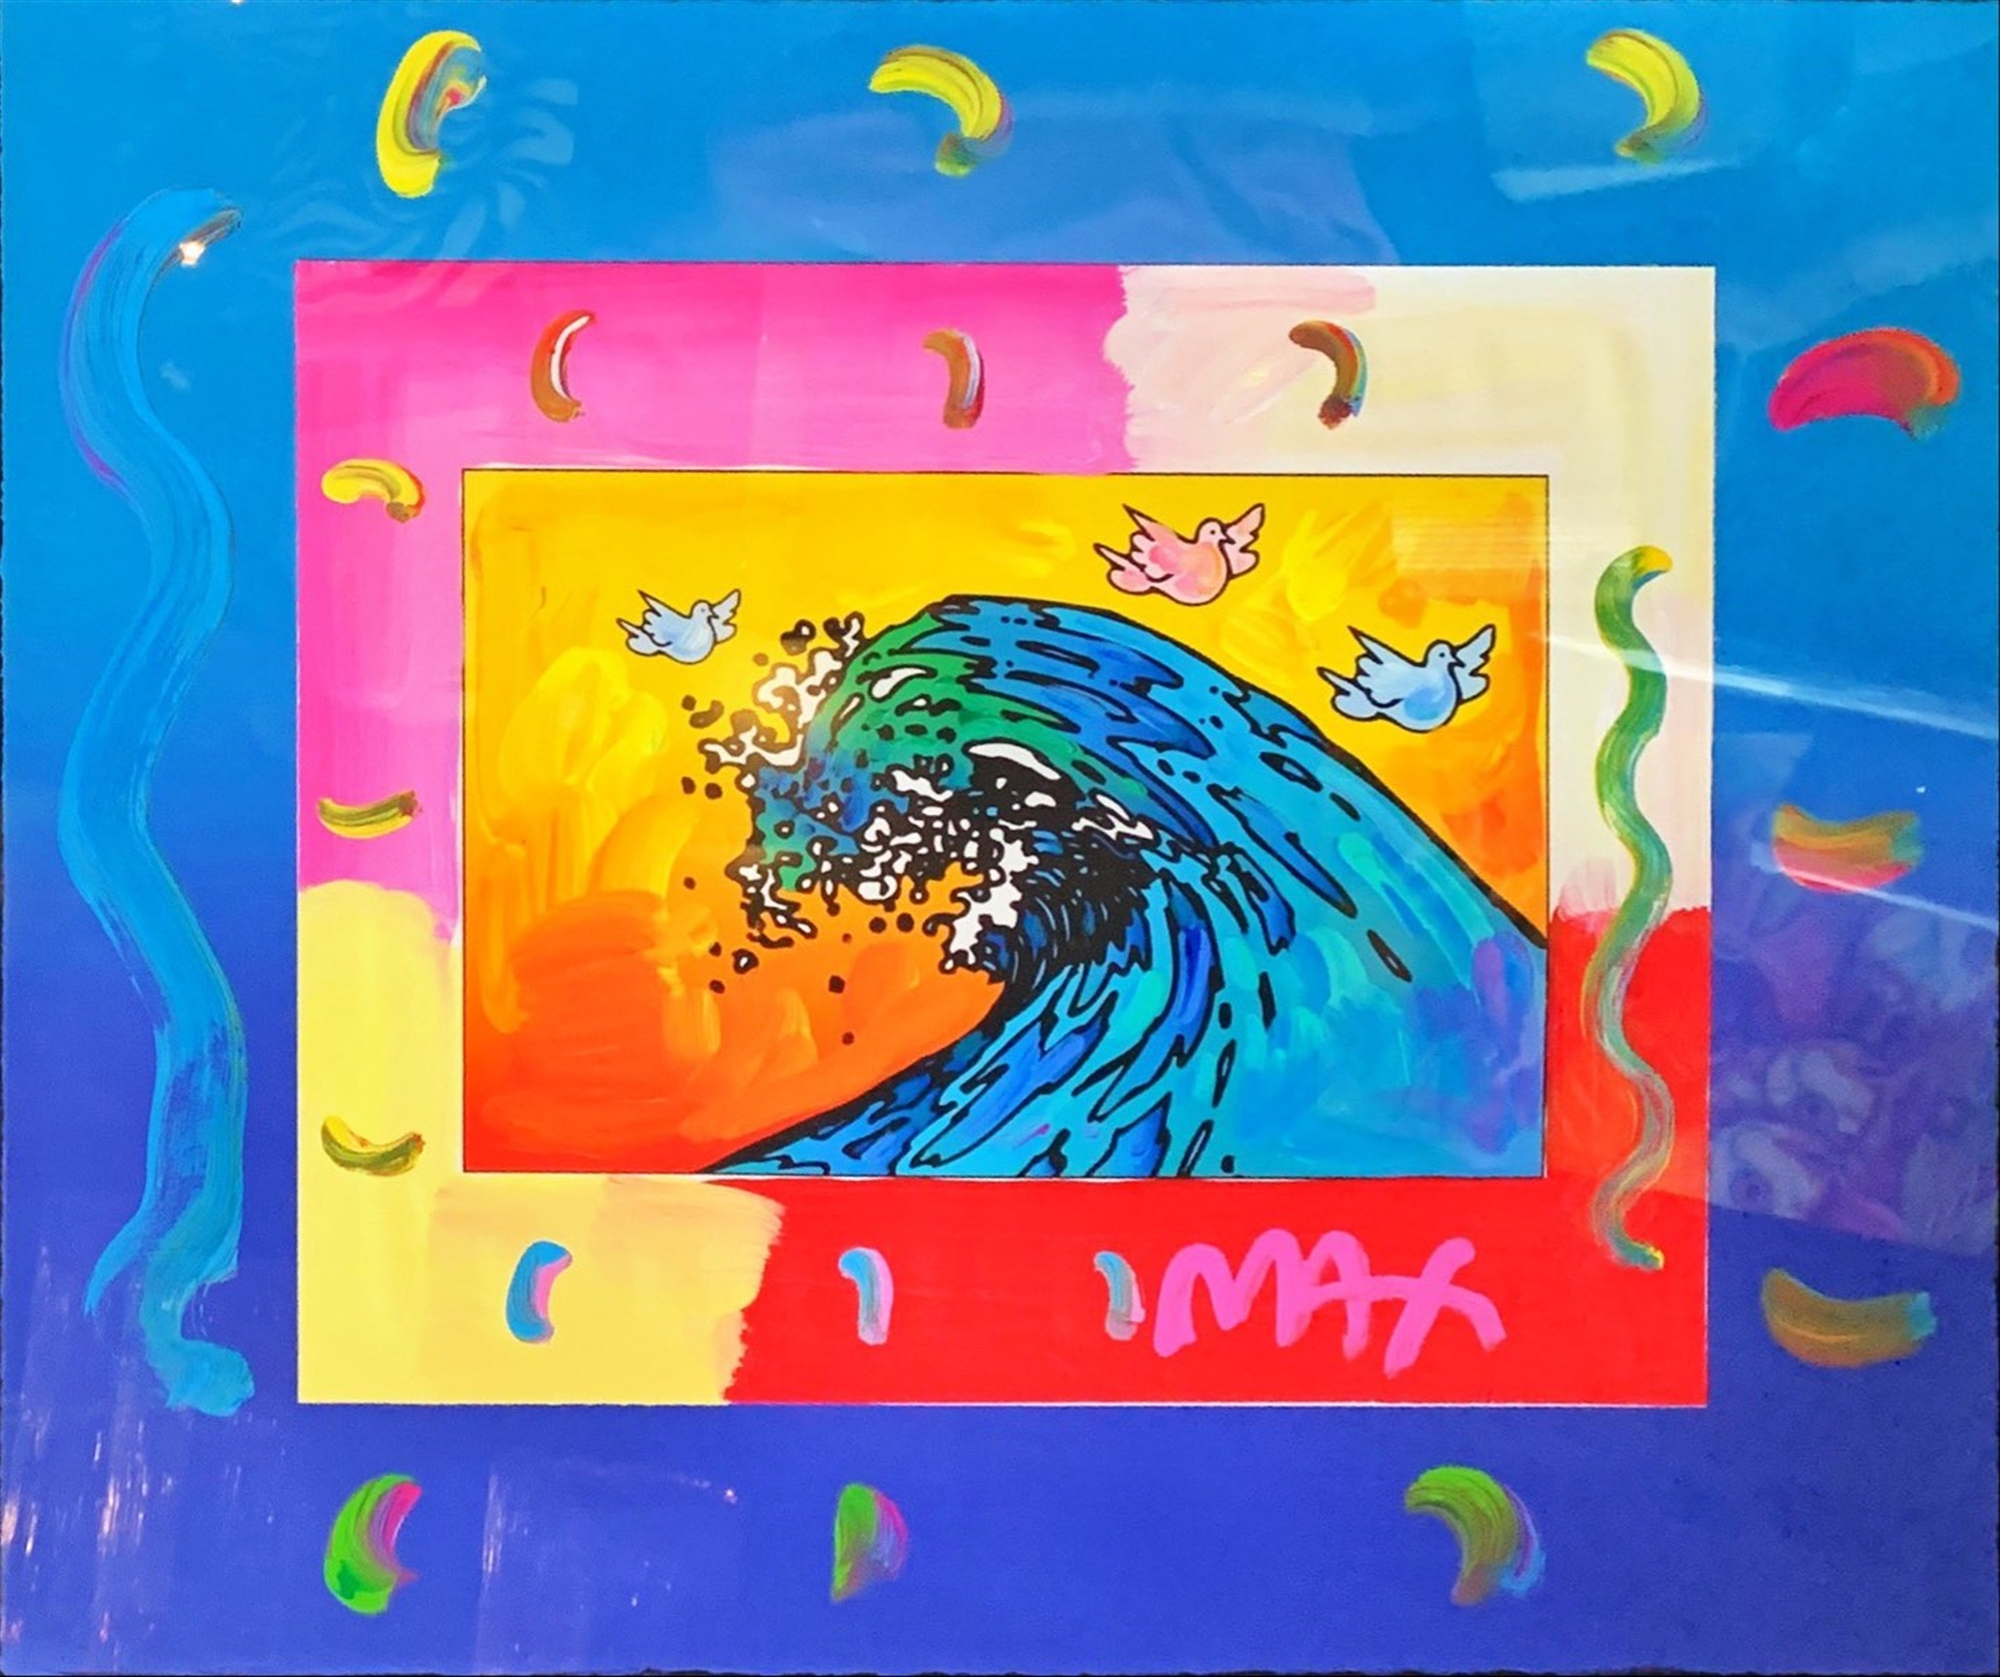 Protect Our Planet by Peter Max